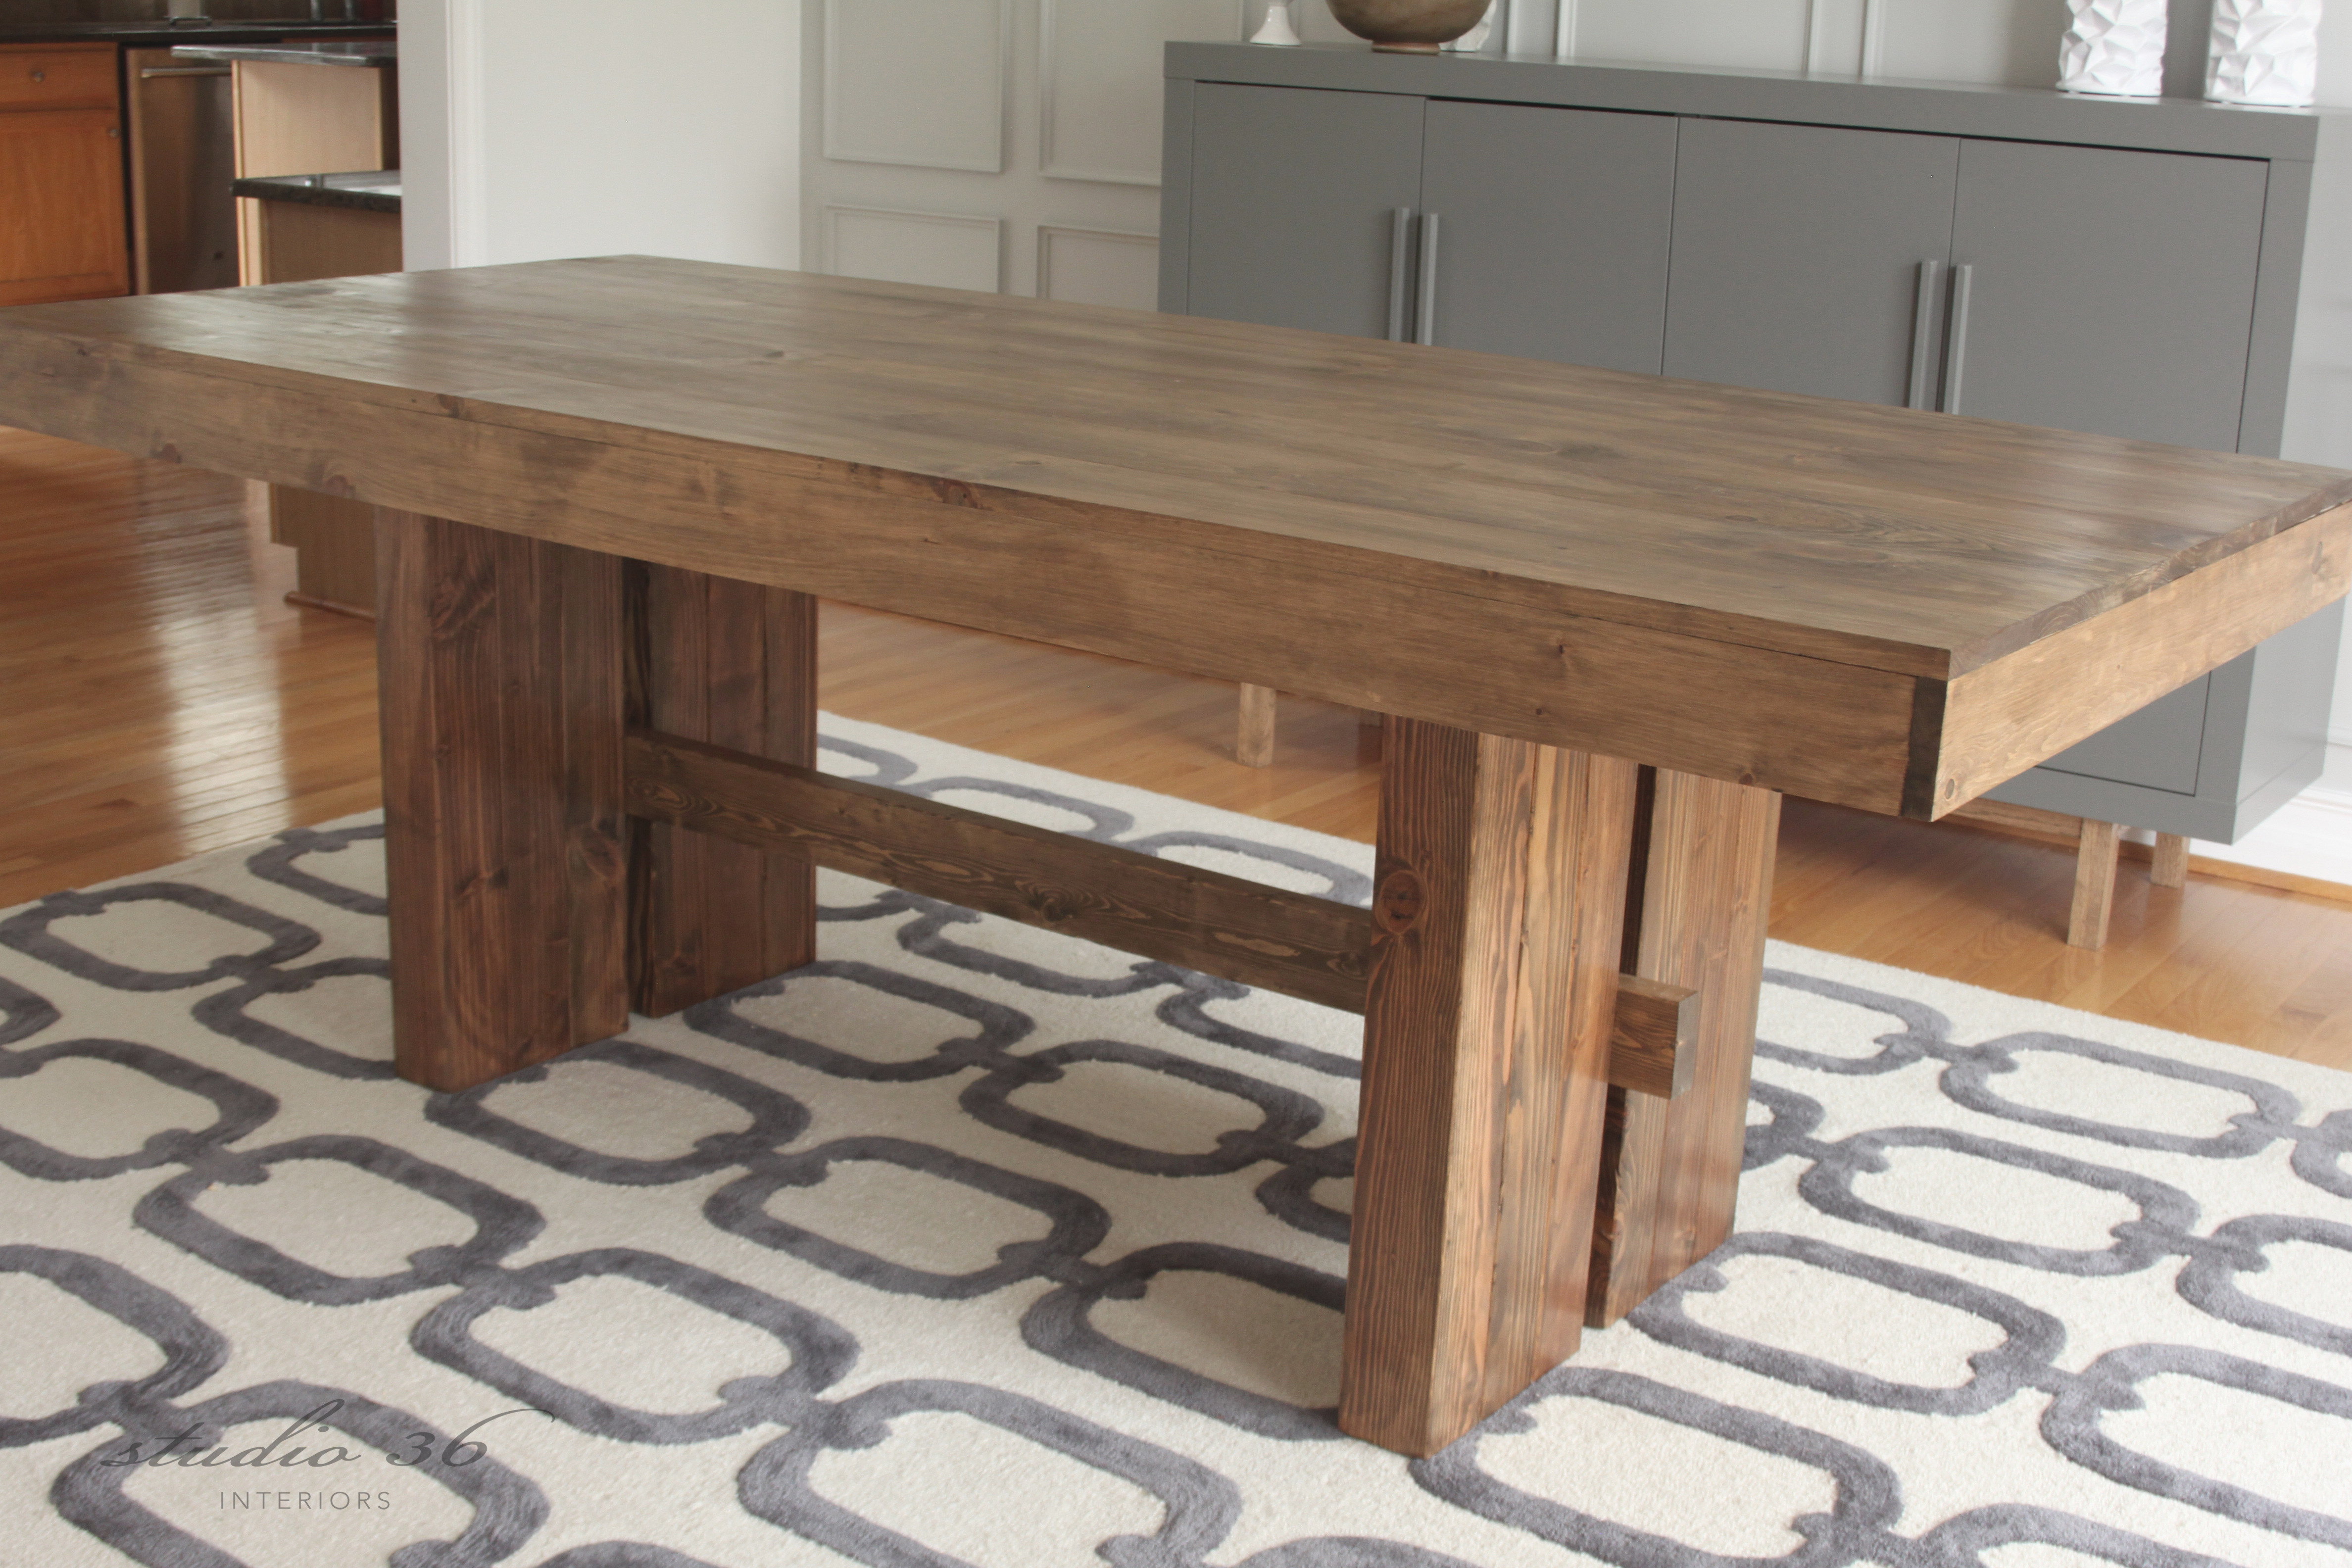 hardwood floor stain ideas of narrow extendable dining table best smart solid wood dining table for narrow extendable dining table best smart solid wood dining table set ideas od dining room tables